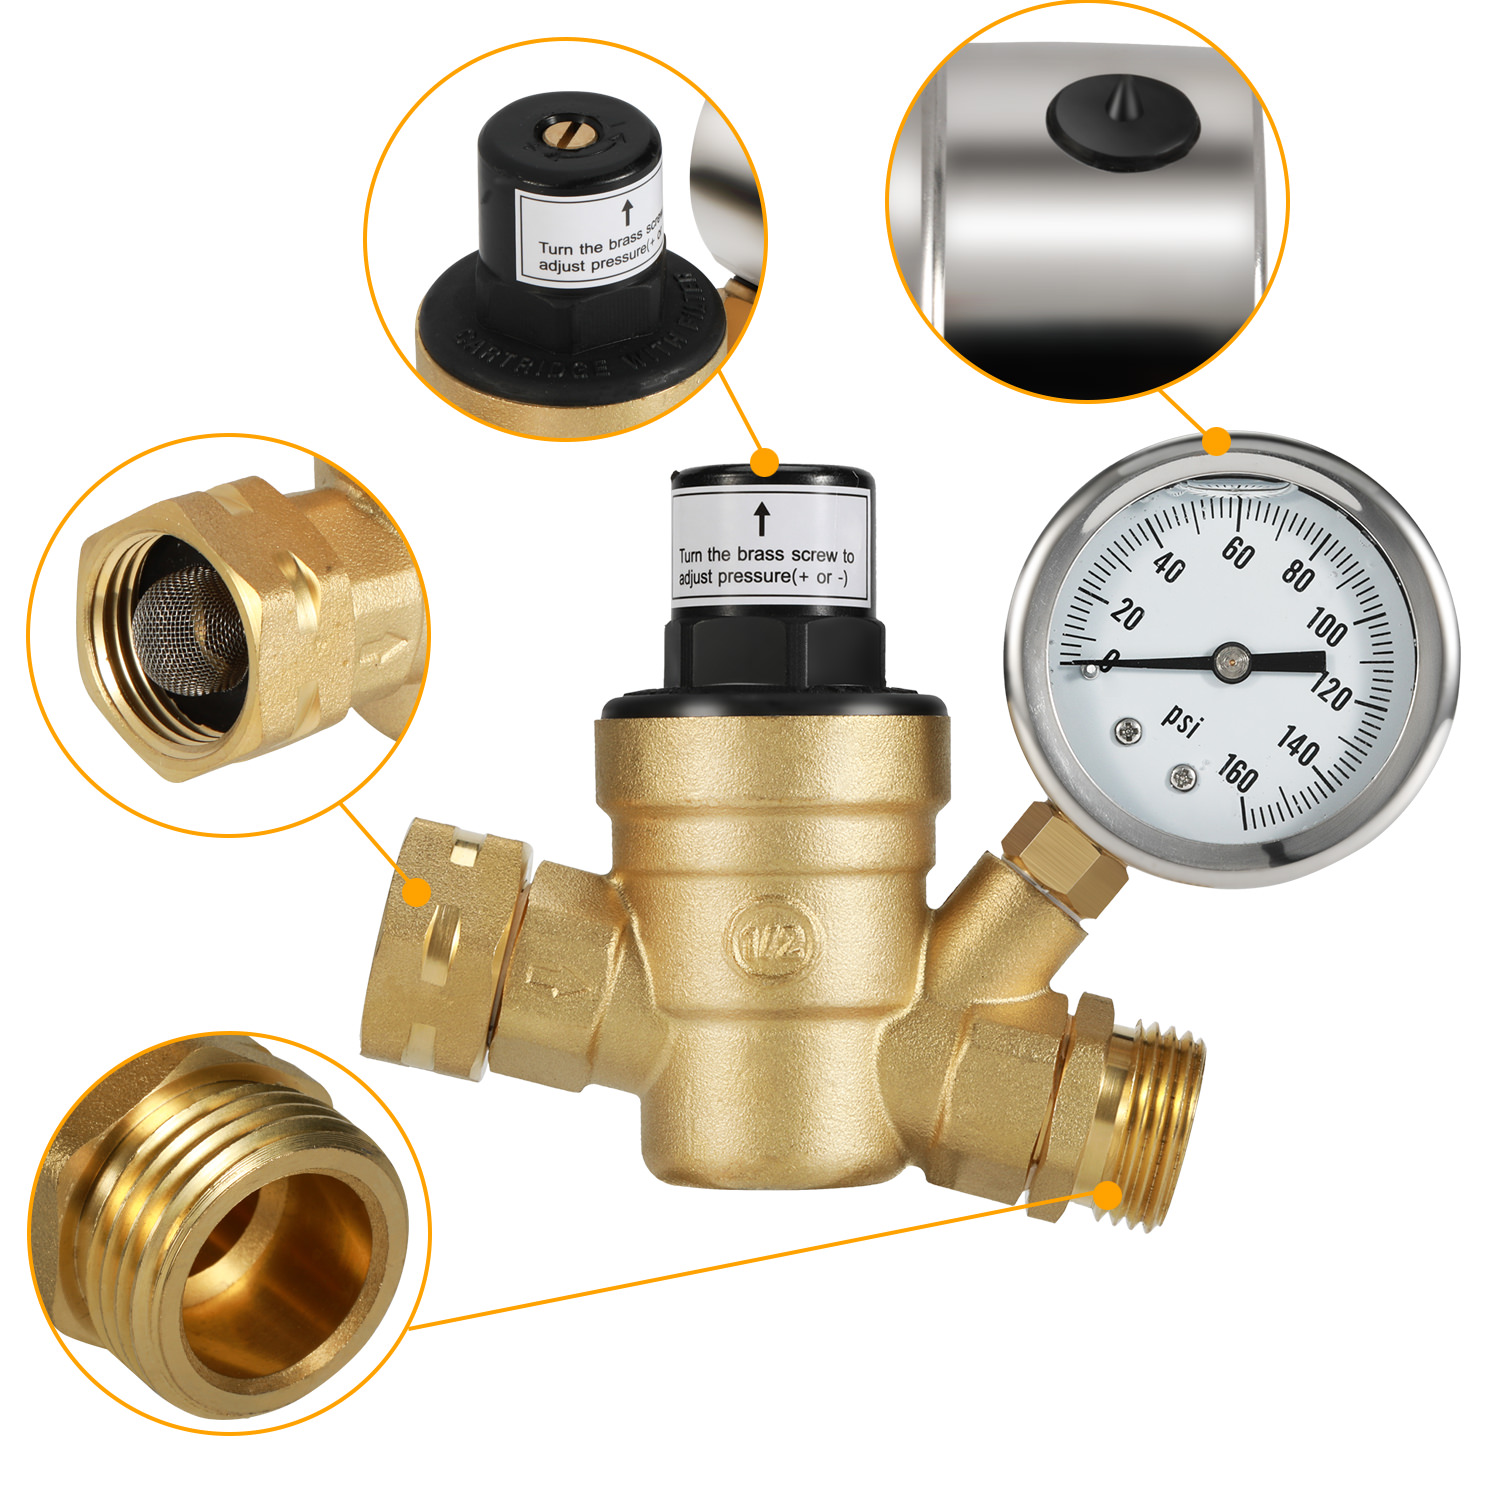 Brass Lead-Free Adjustable Water Pressure Reducer with Gauge for RV Camper Water Pressure Regulator Valve and Inlet Screened Filter for Home Garden and Campsites